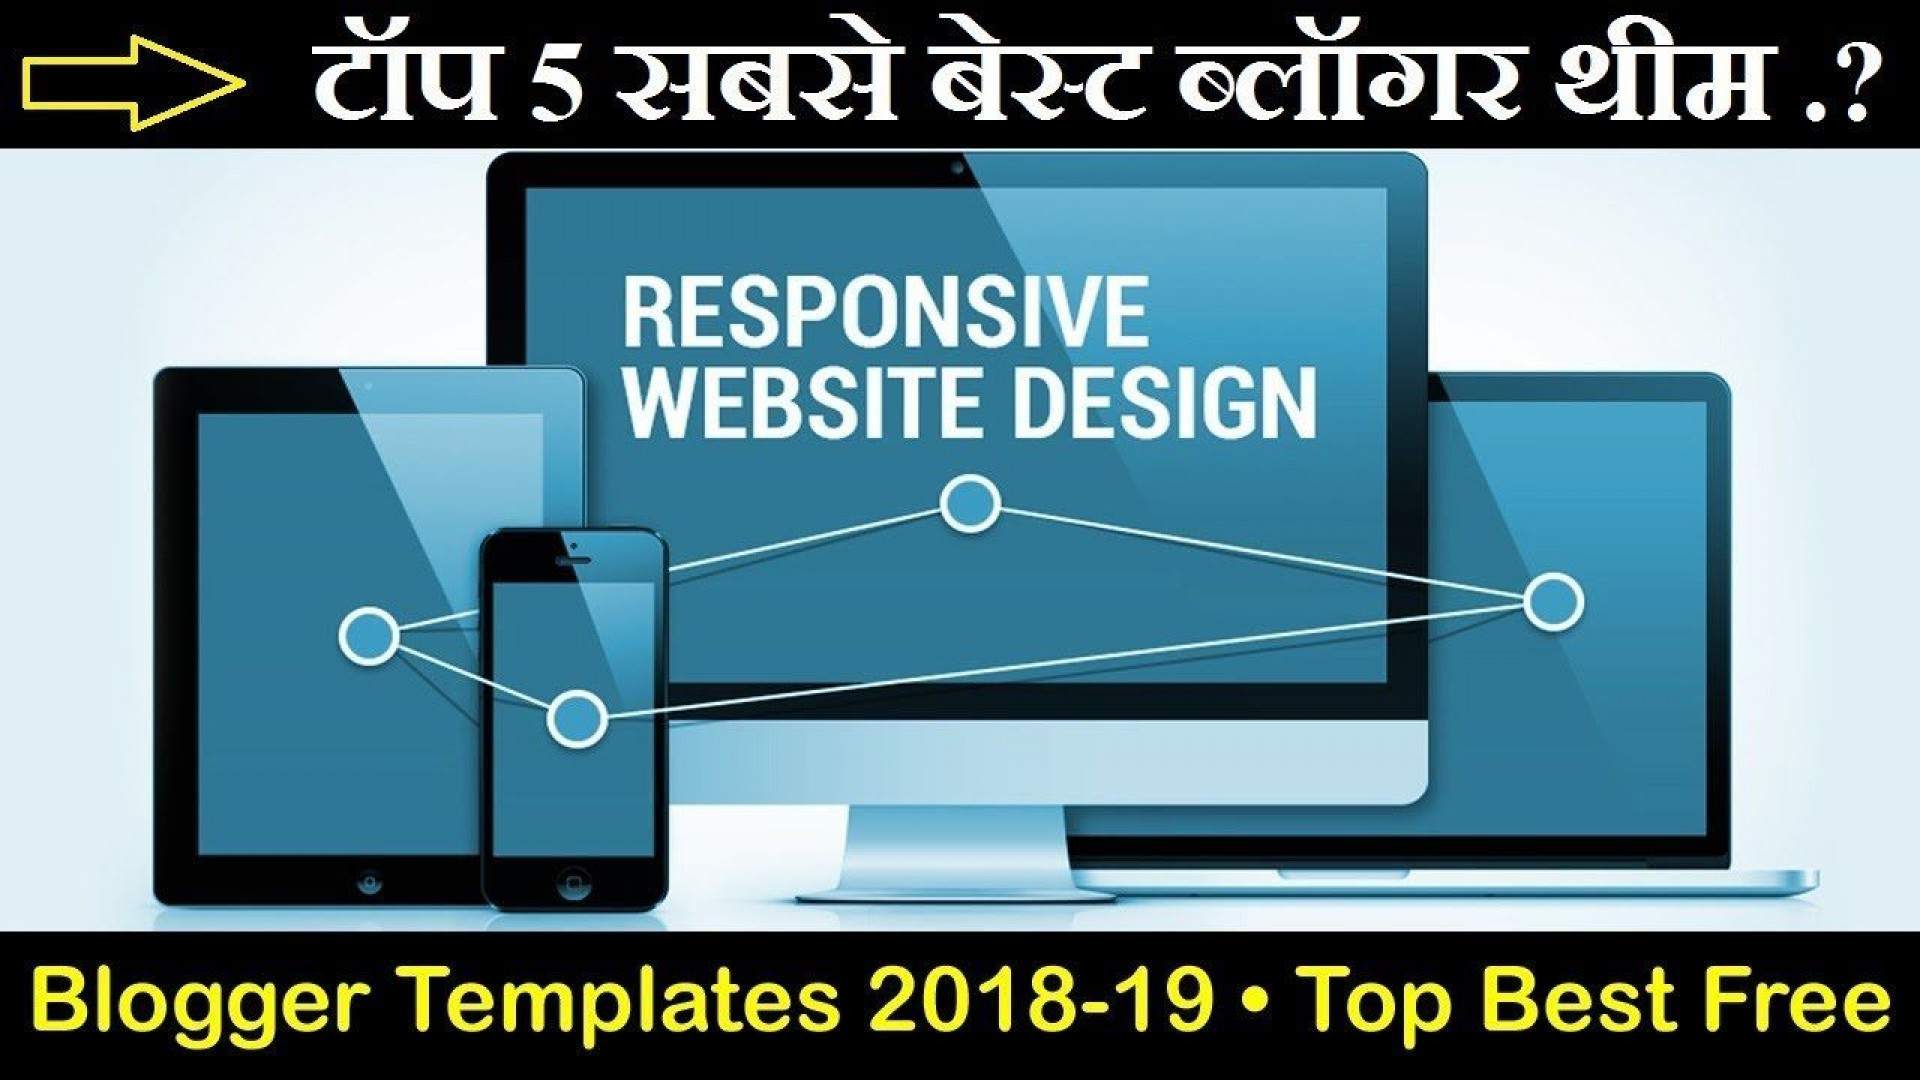 007 Exceptional Best Free Responsive Blogger Template 2018 Idea 1920